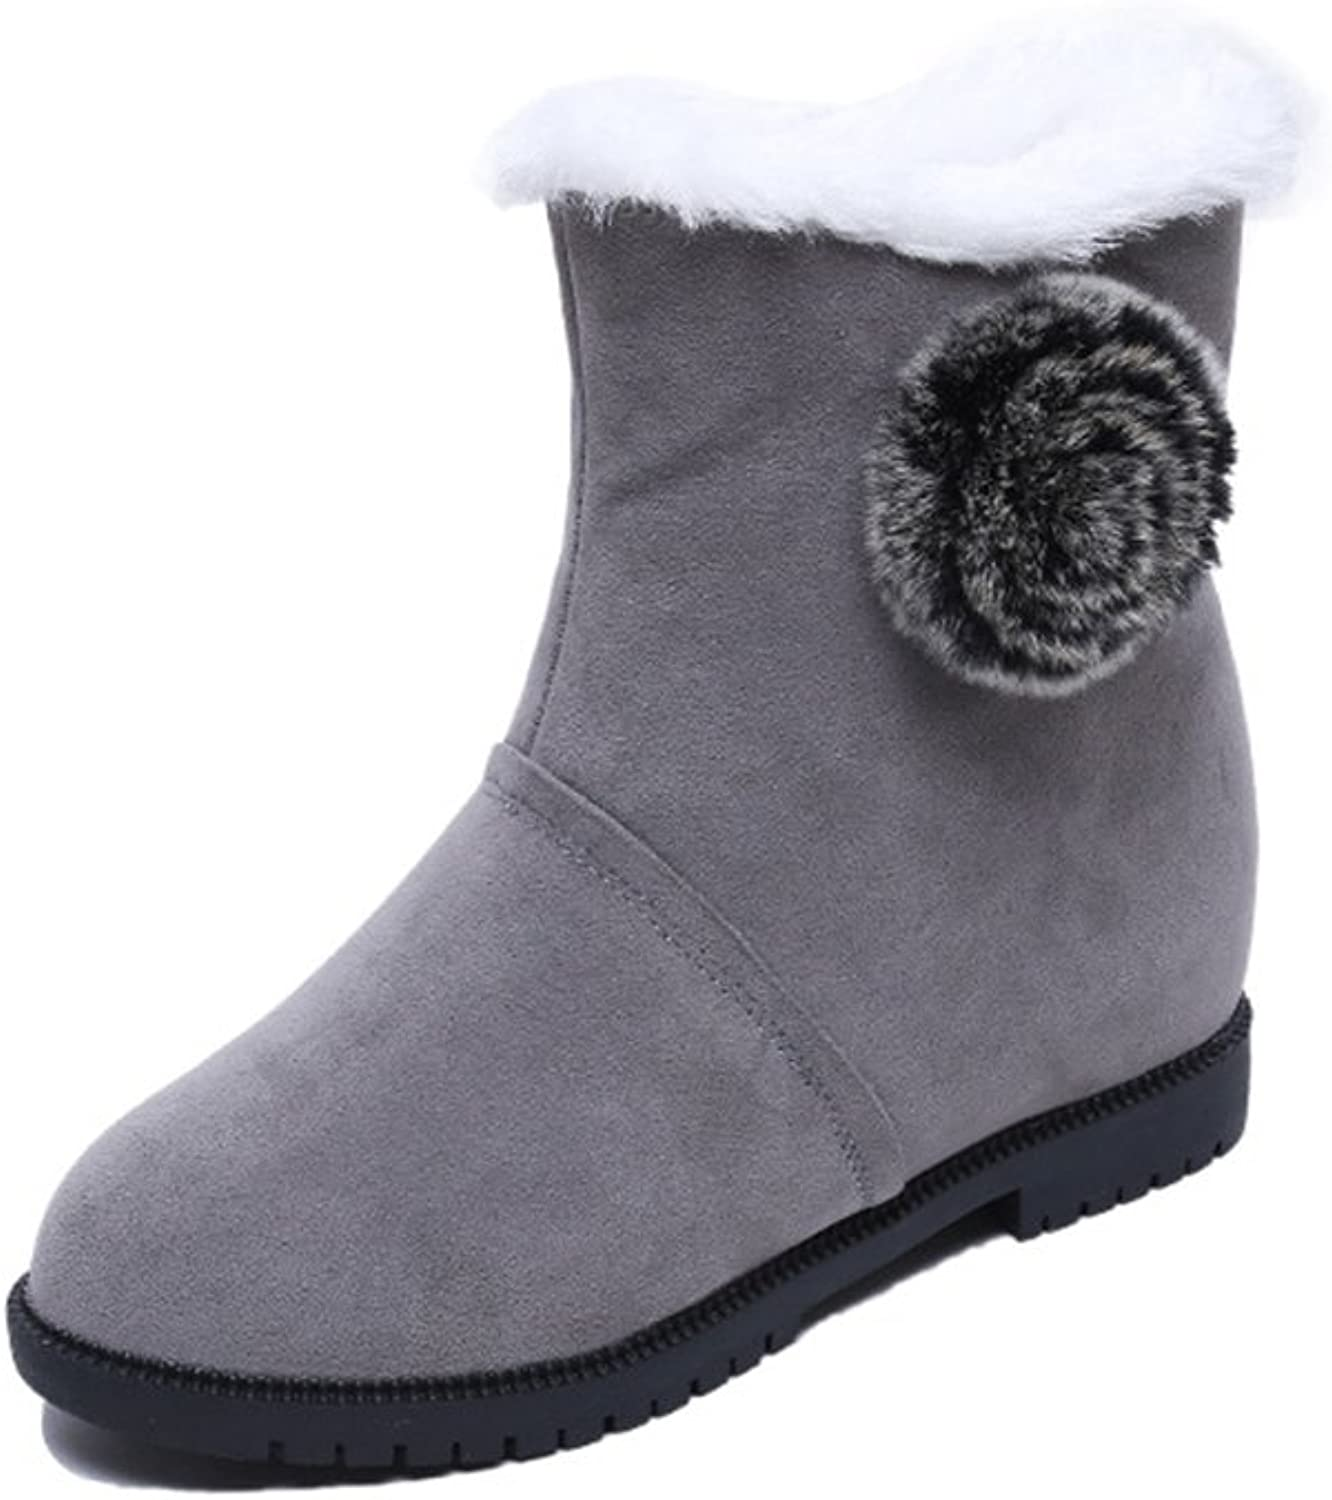 New Year Women's Classic Winter Snow Low-heel Pull-on Type Fleece Lining